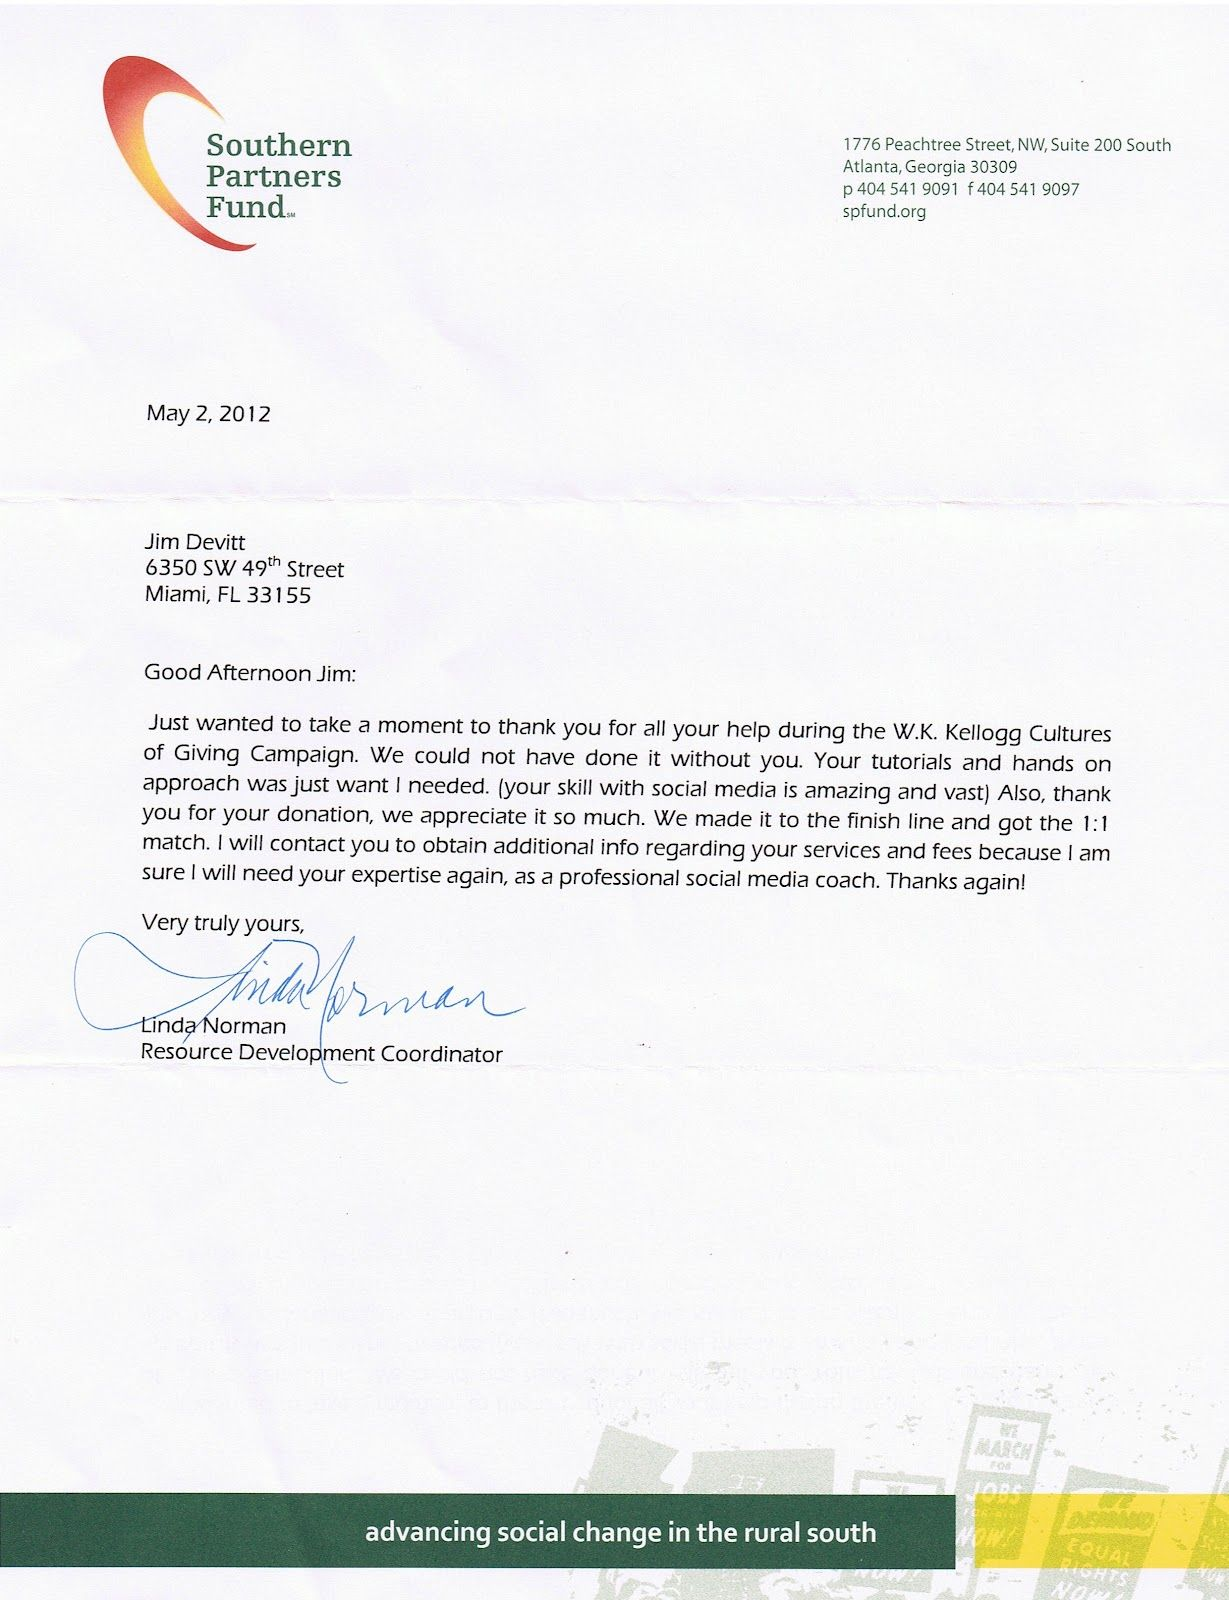 Endorsement Letter – Sample Endorsement Letter